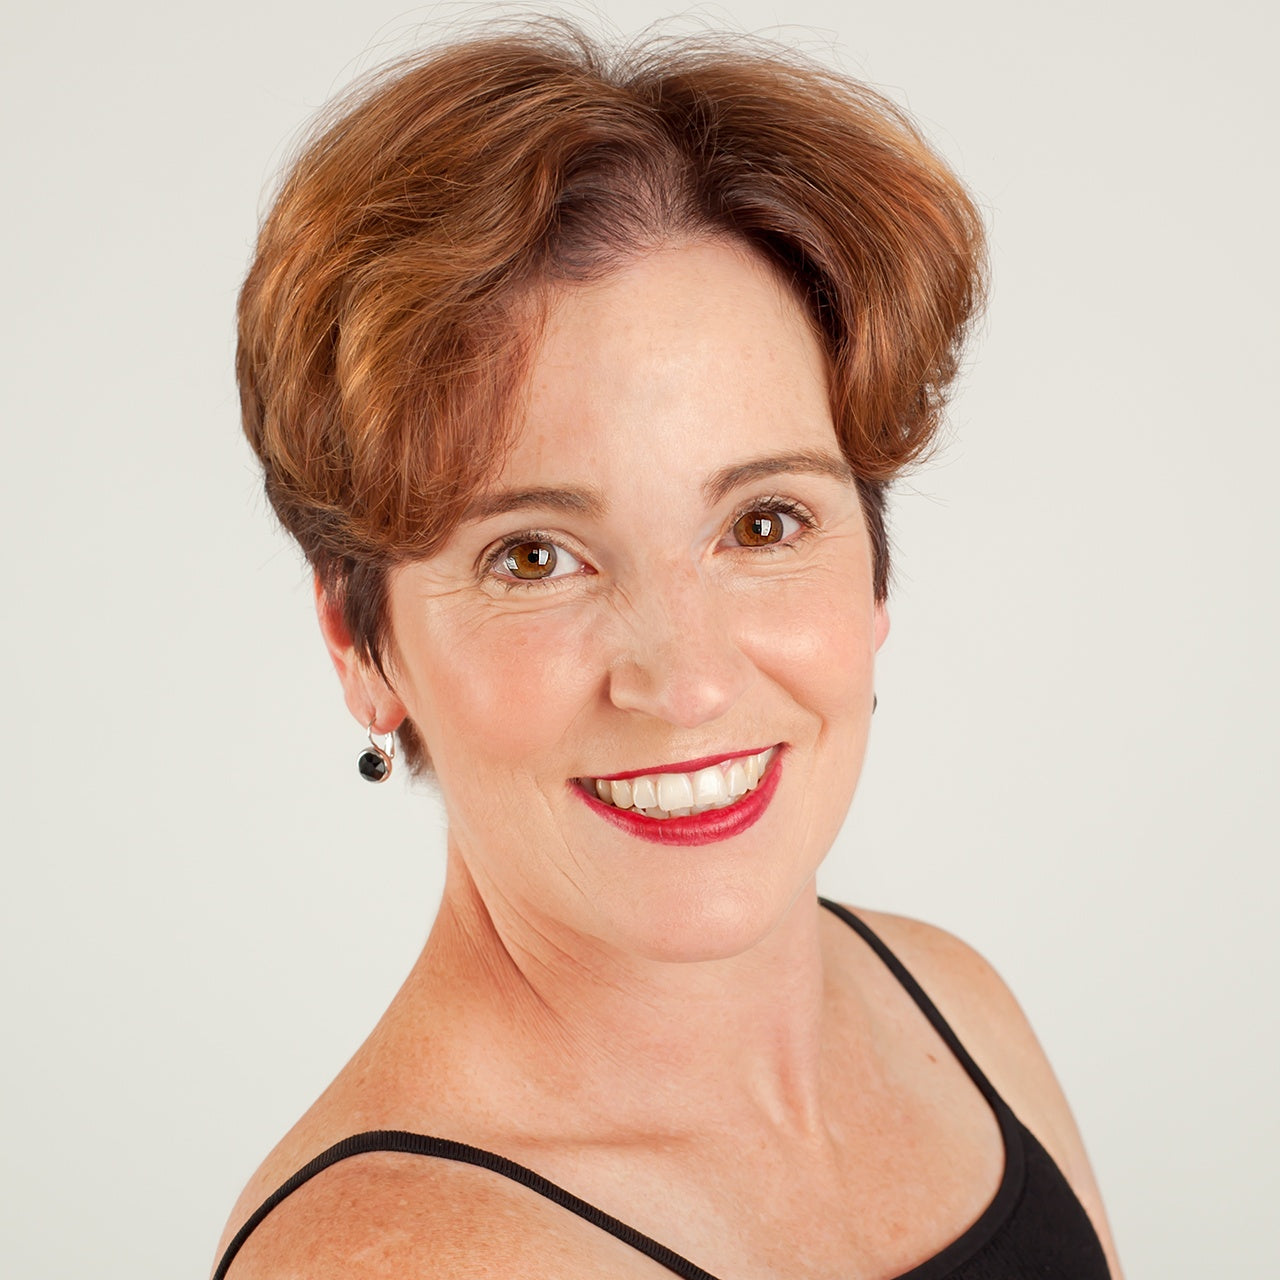 Dr Nicole Highet, Clinical Psychologist at Nourish Baby